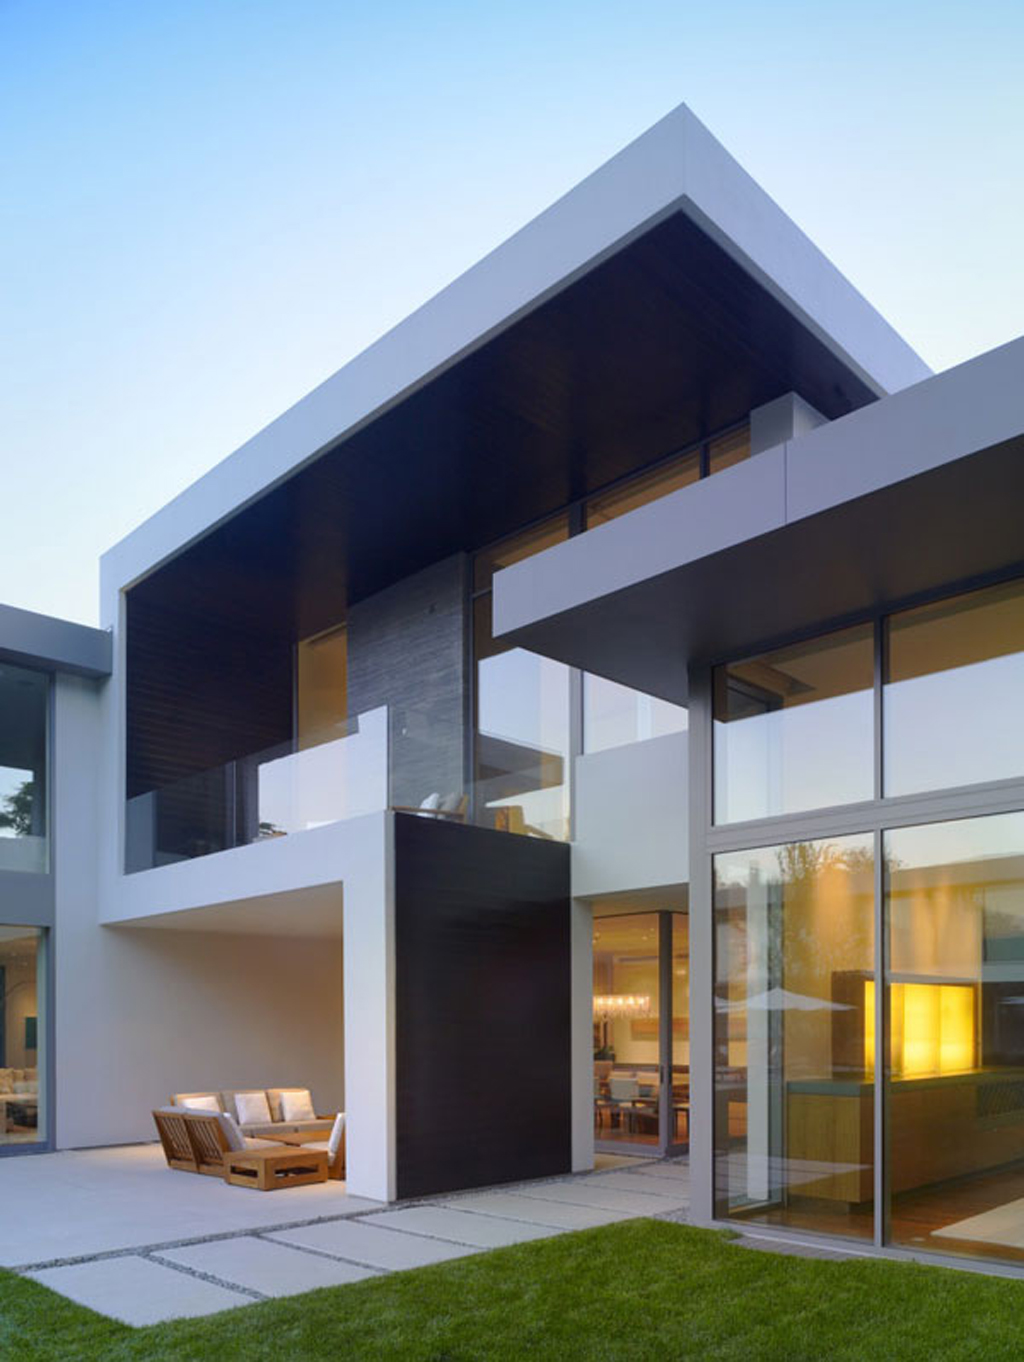 Contemporary House Design With Exterior Ceramic Panels And: Architecture Villa Image: Architecture Design For Home